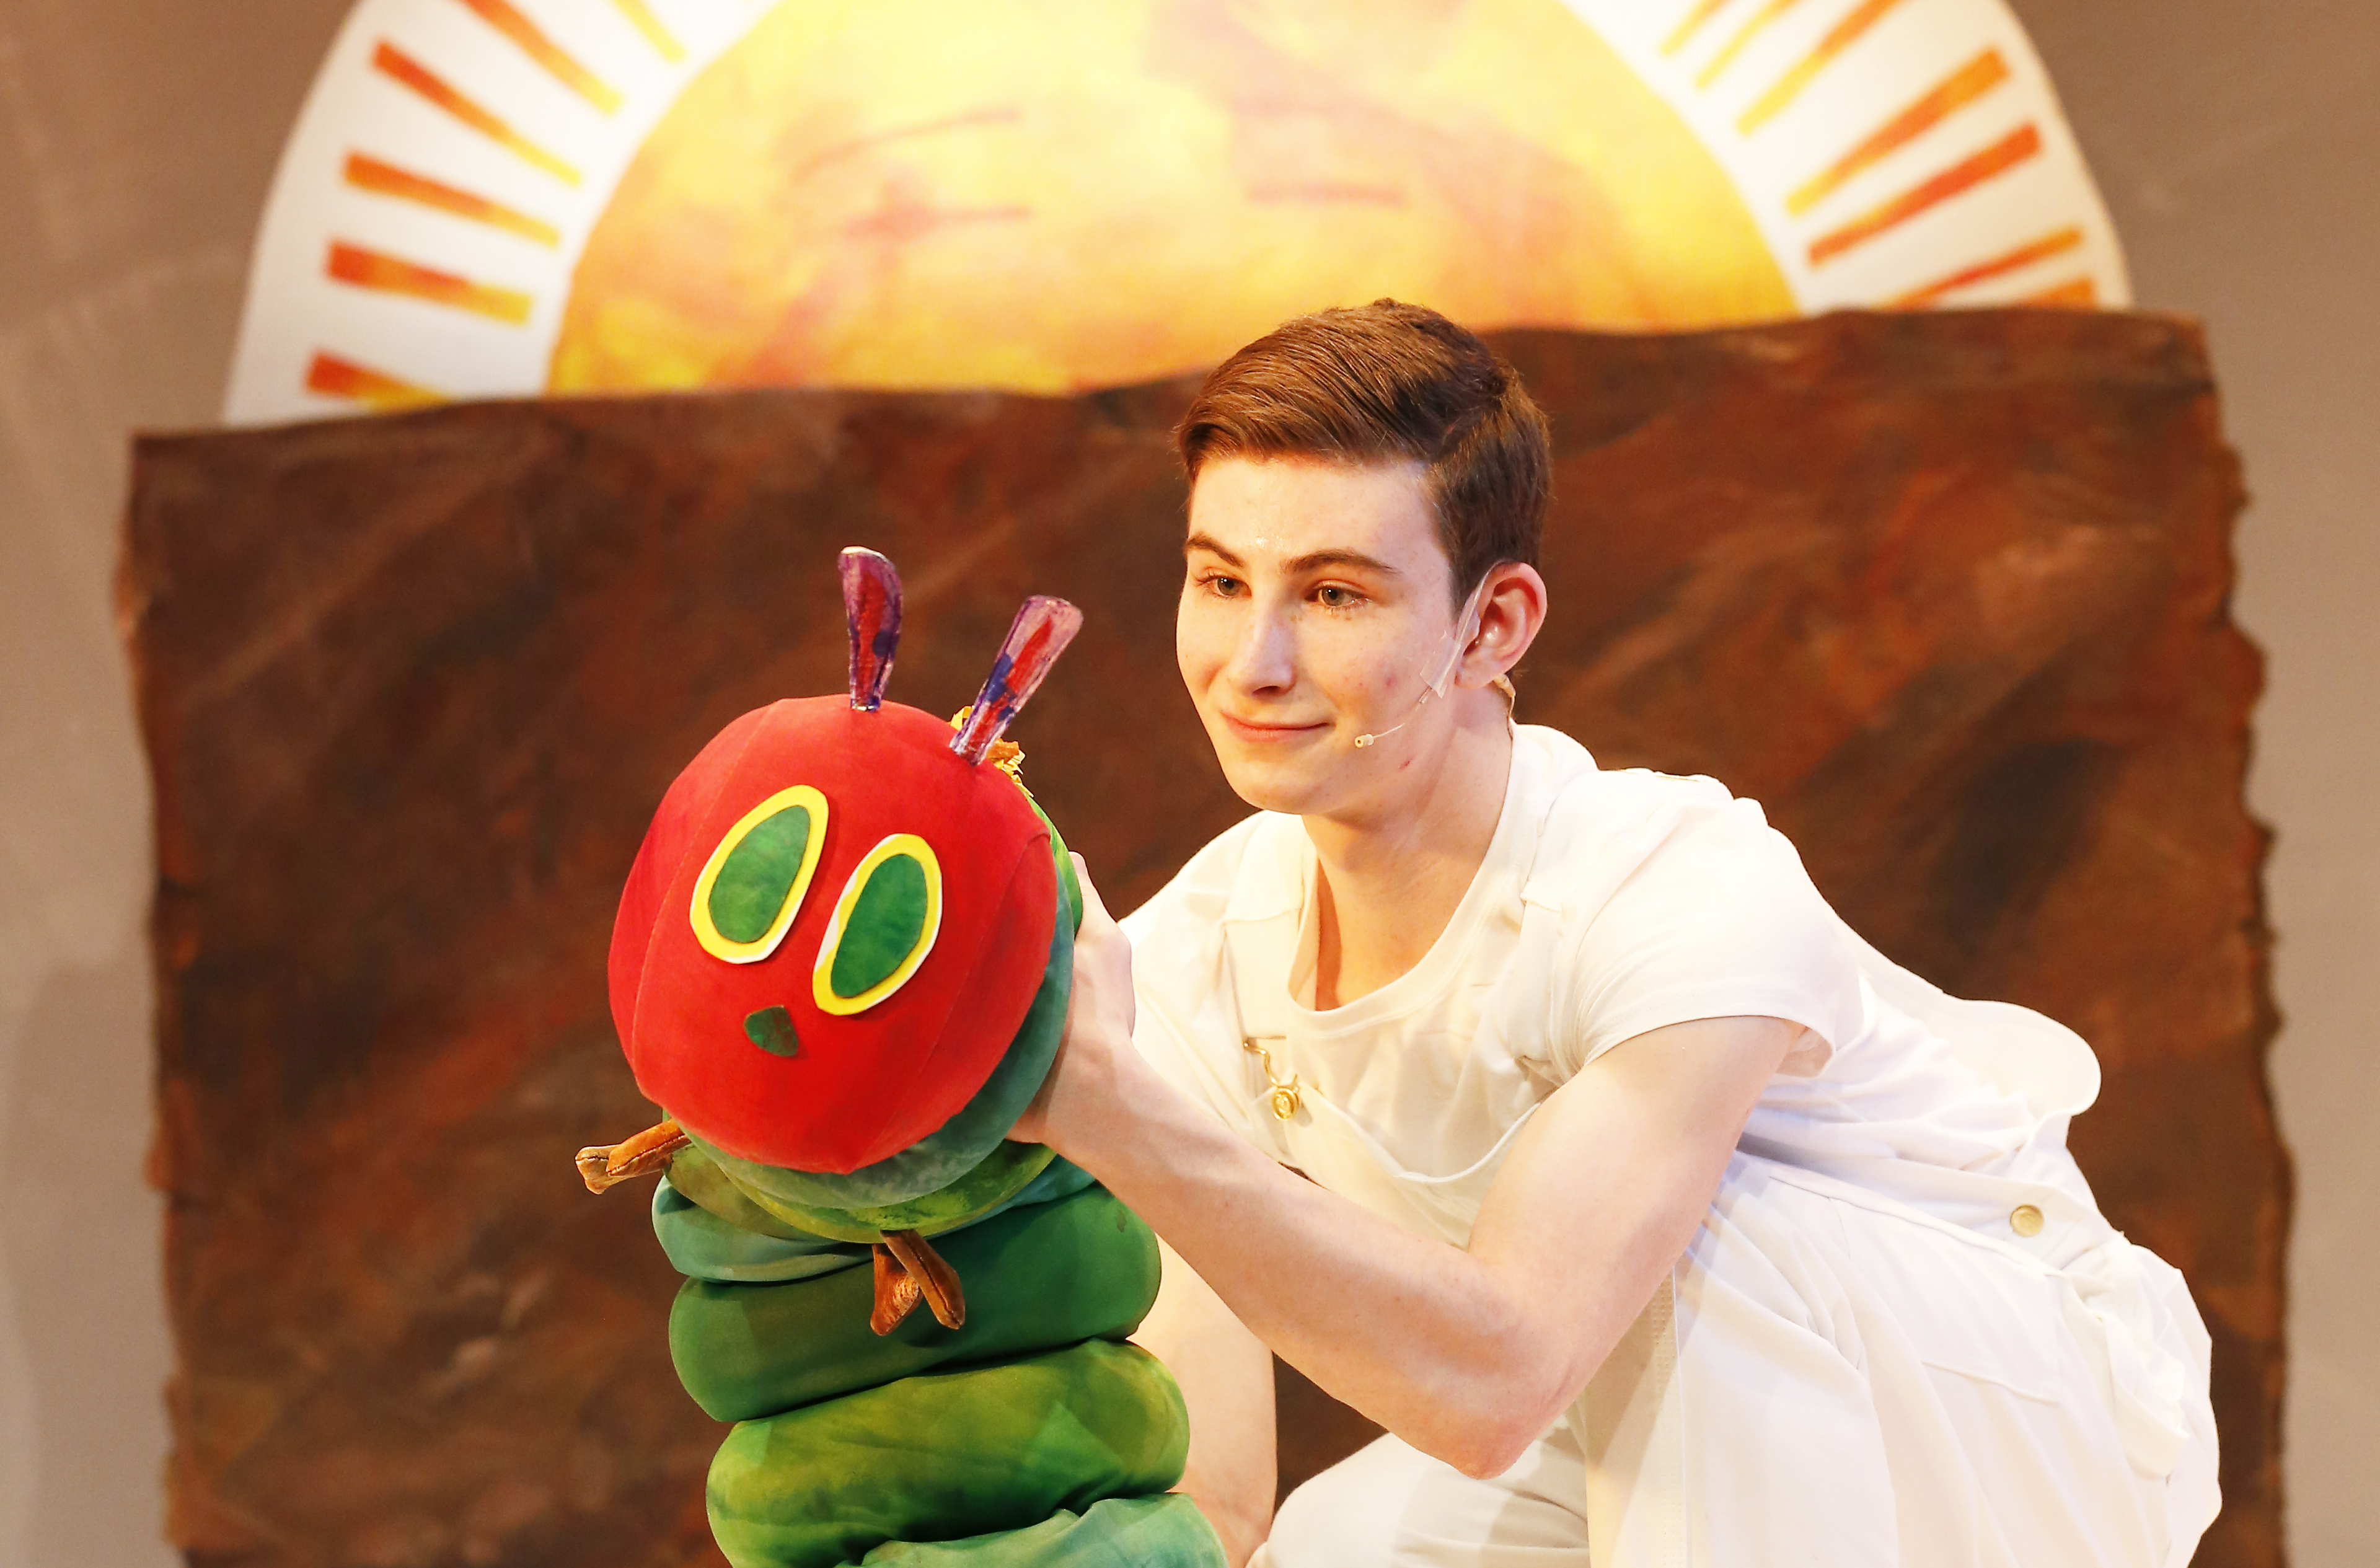 The Very Hungry Caterpillar Show Hits NYC